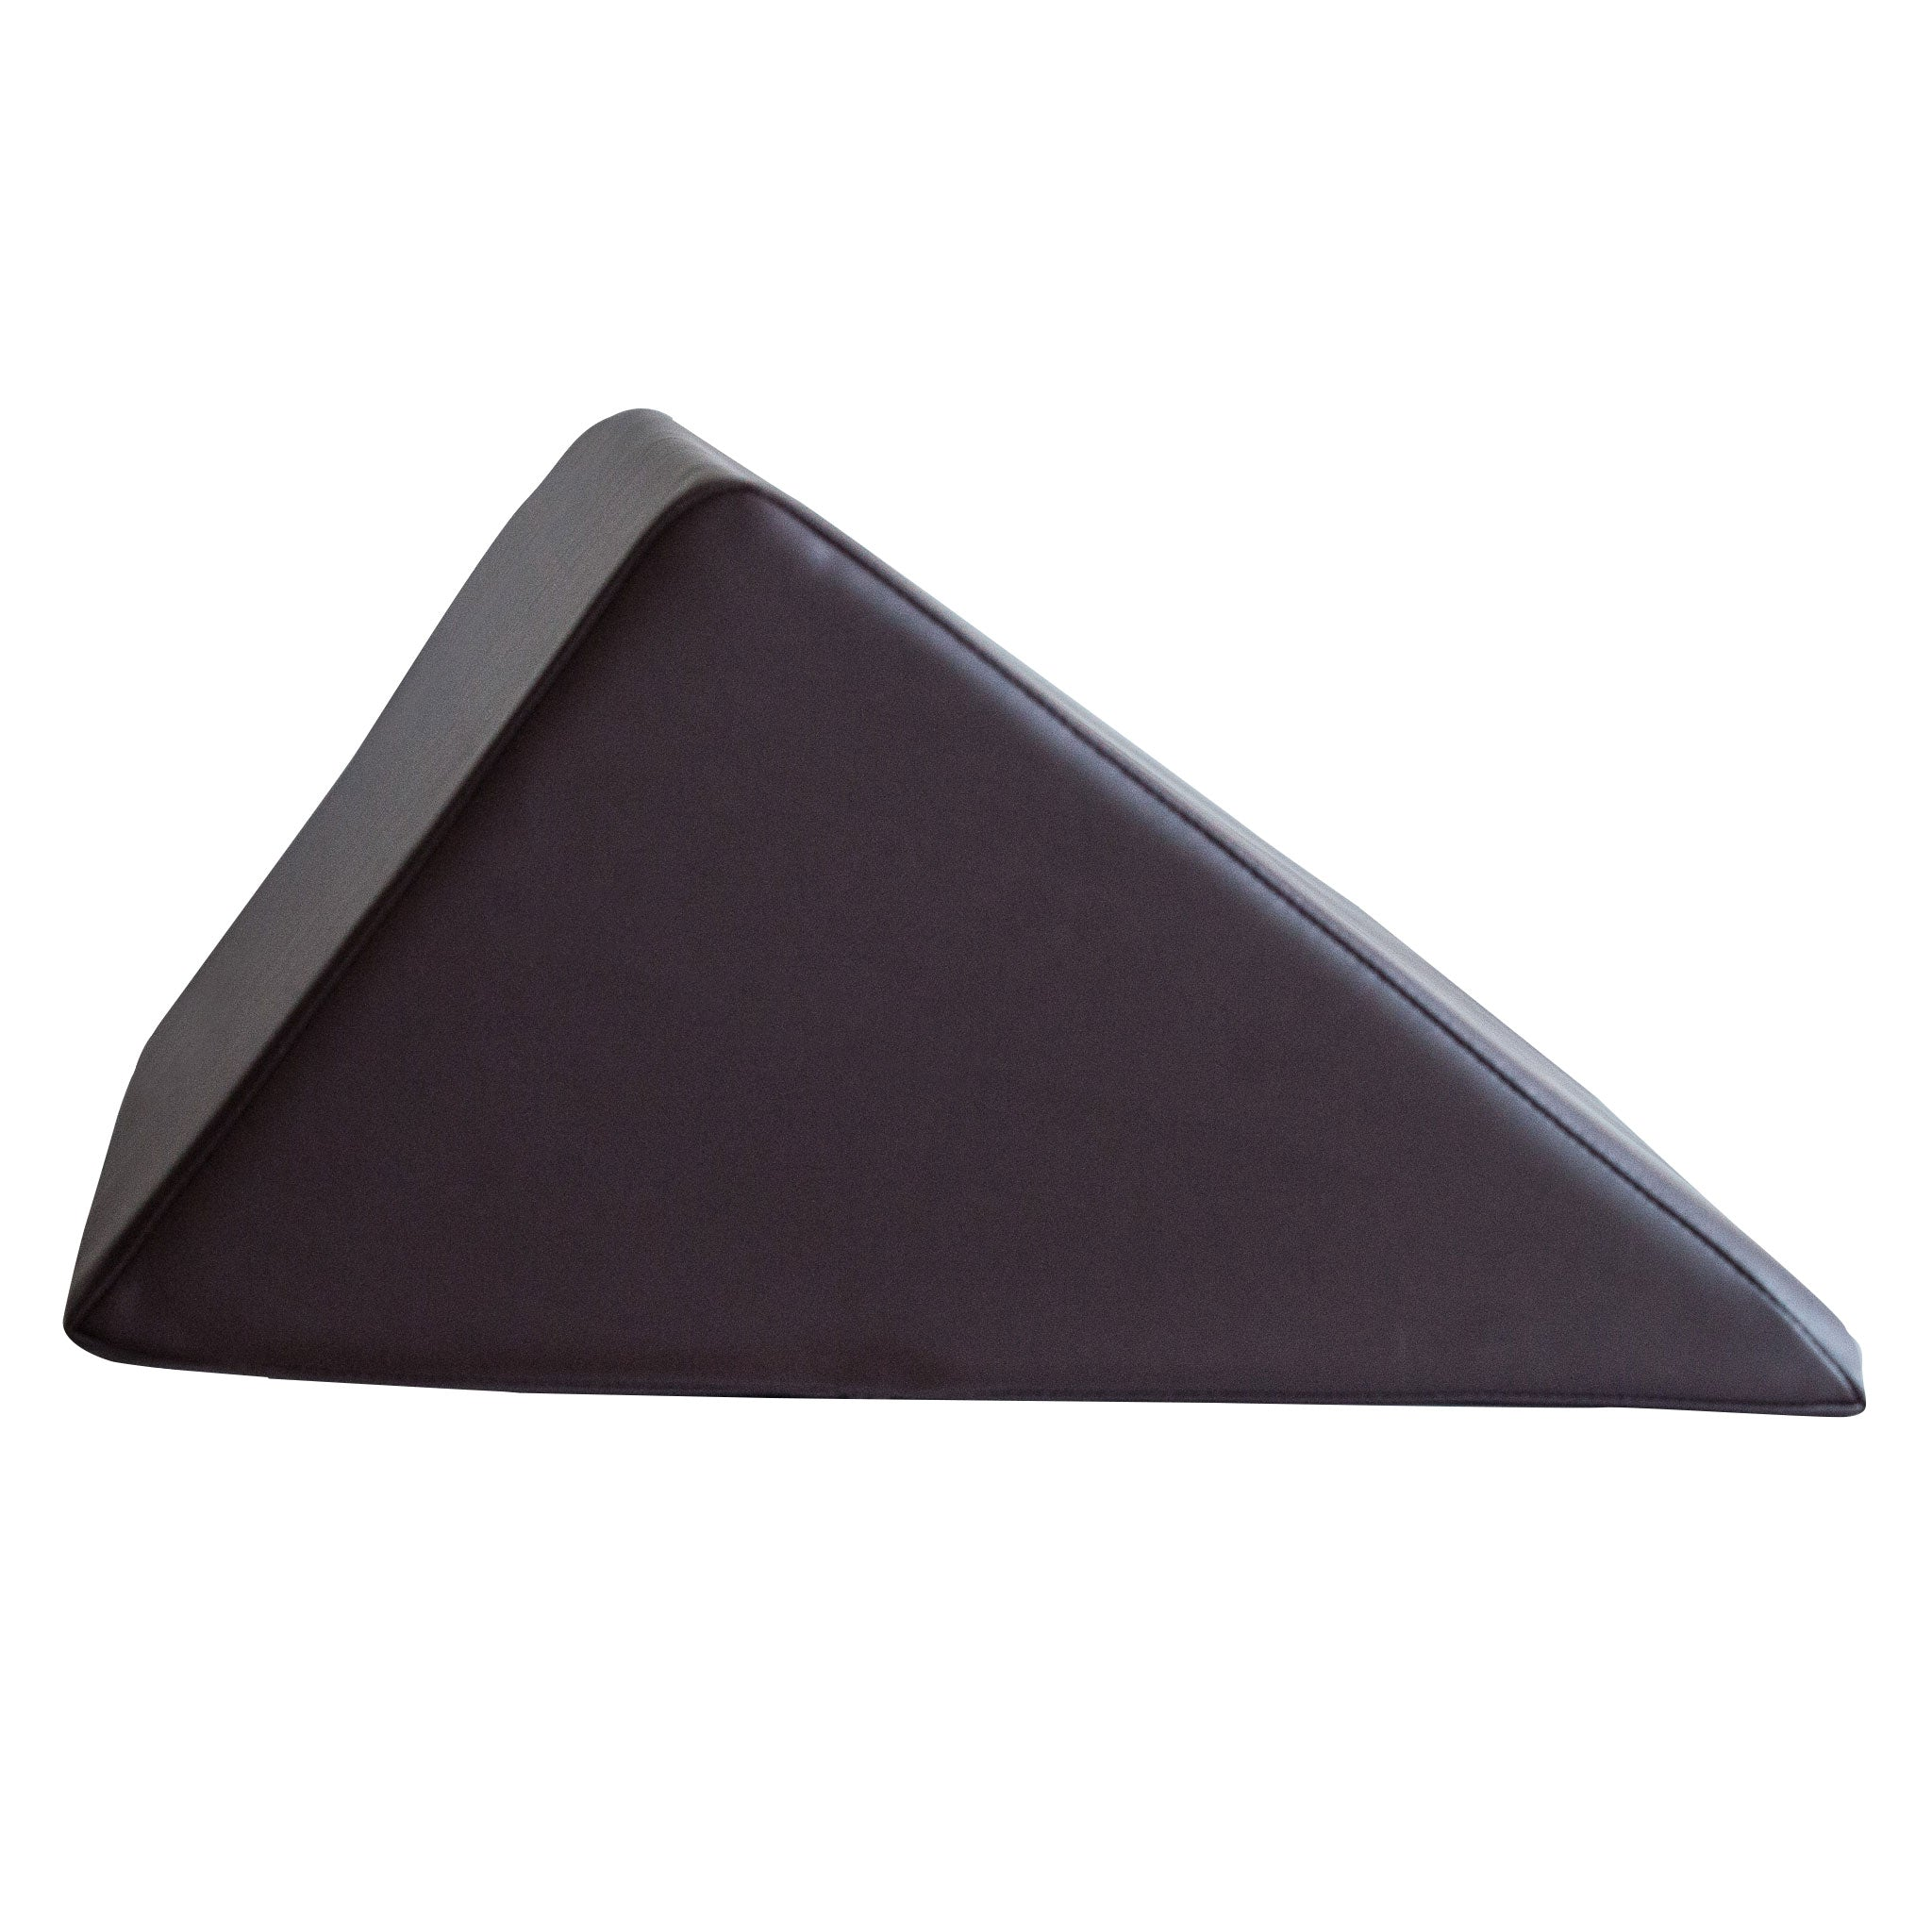 Triangular Wedge Bolster